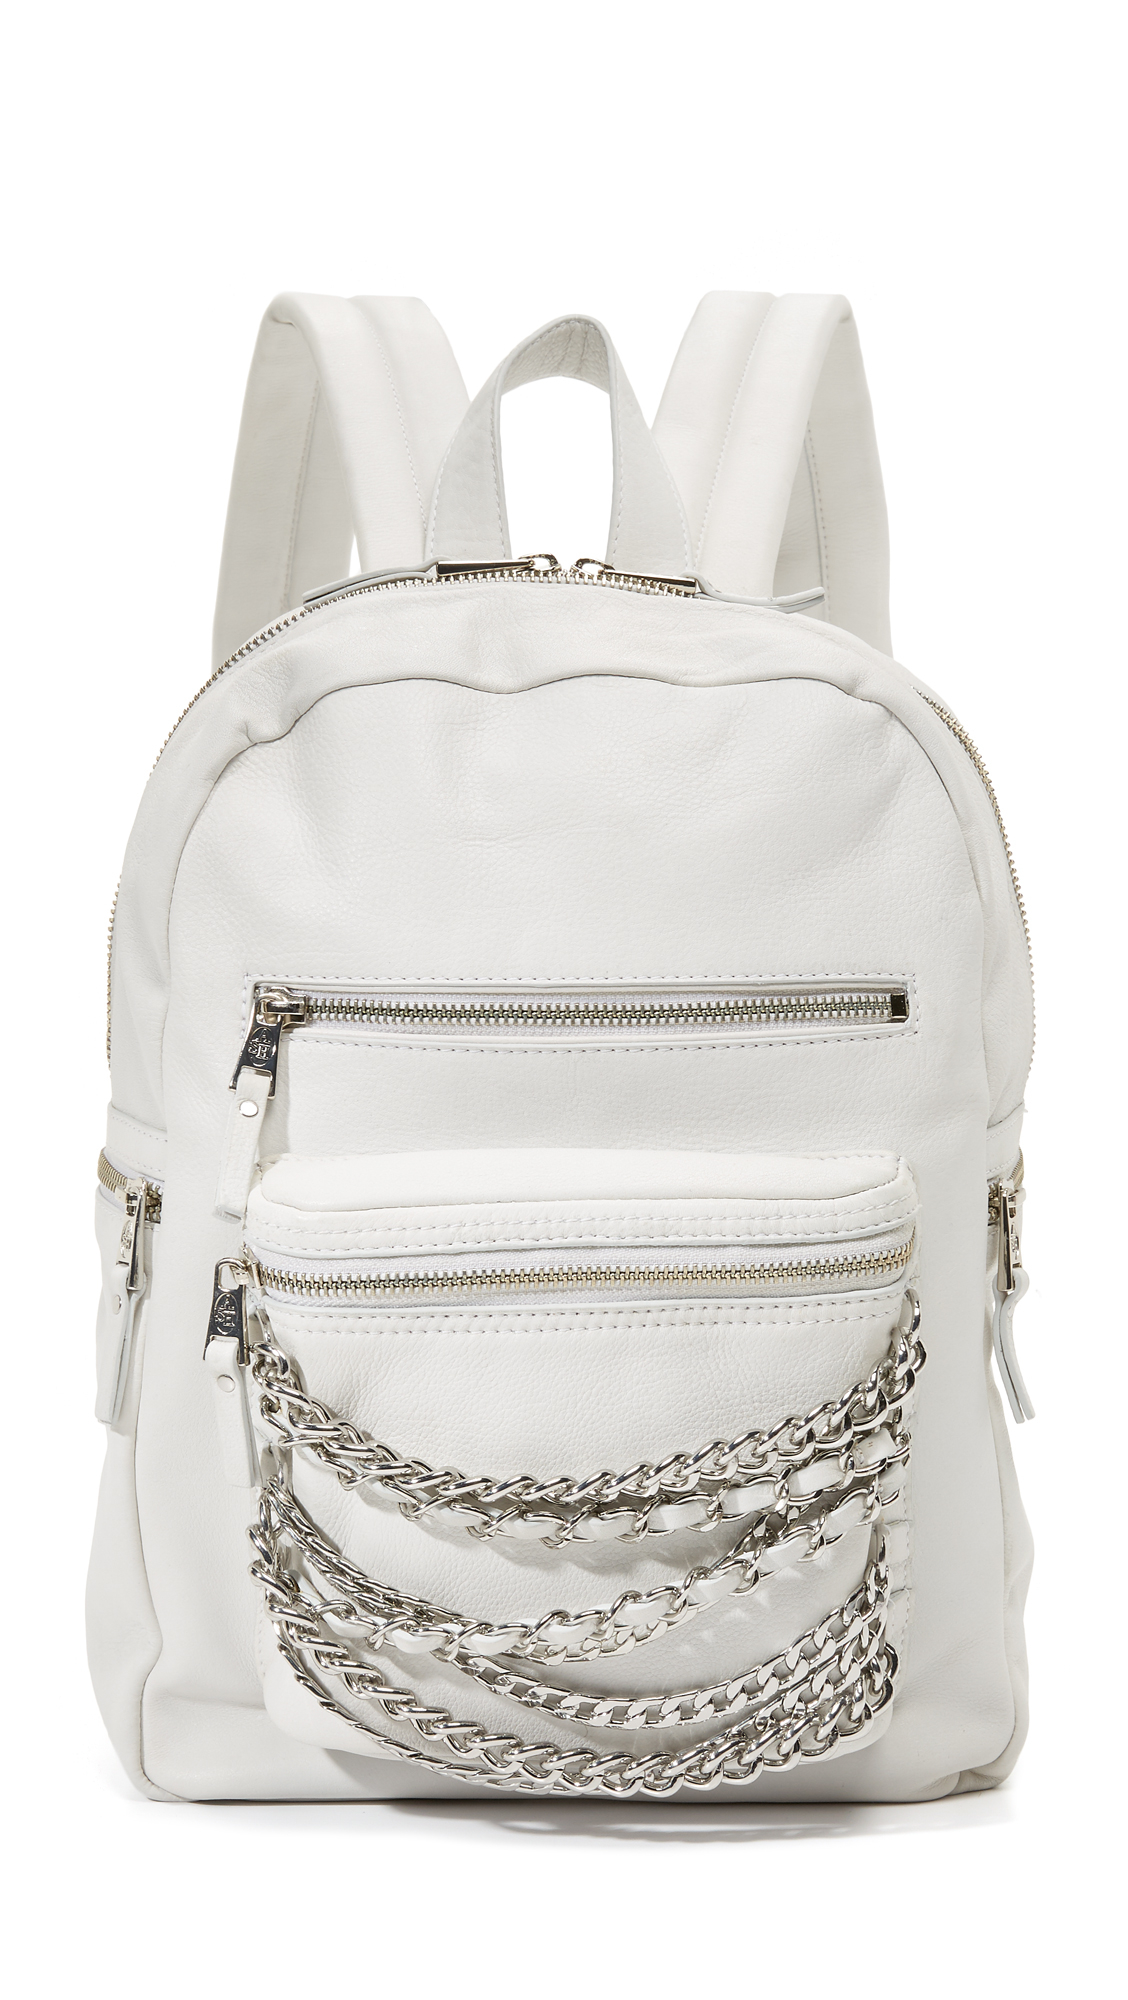 Ash Domino Small Backpack in White | Lyst